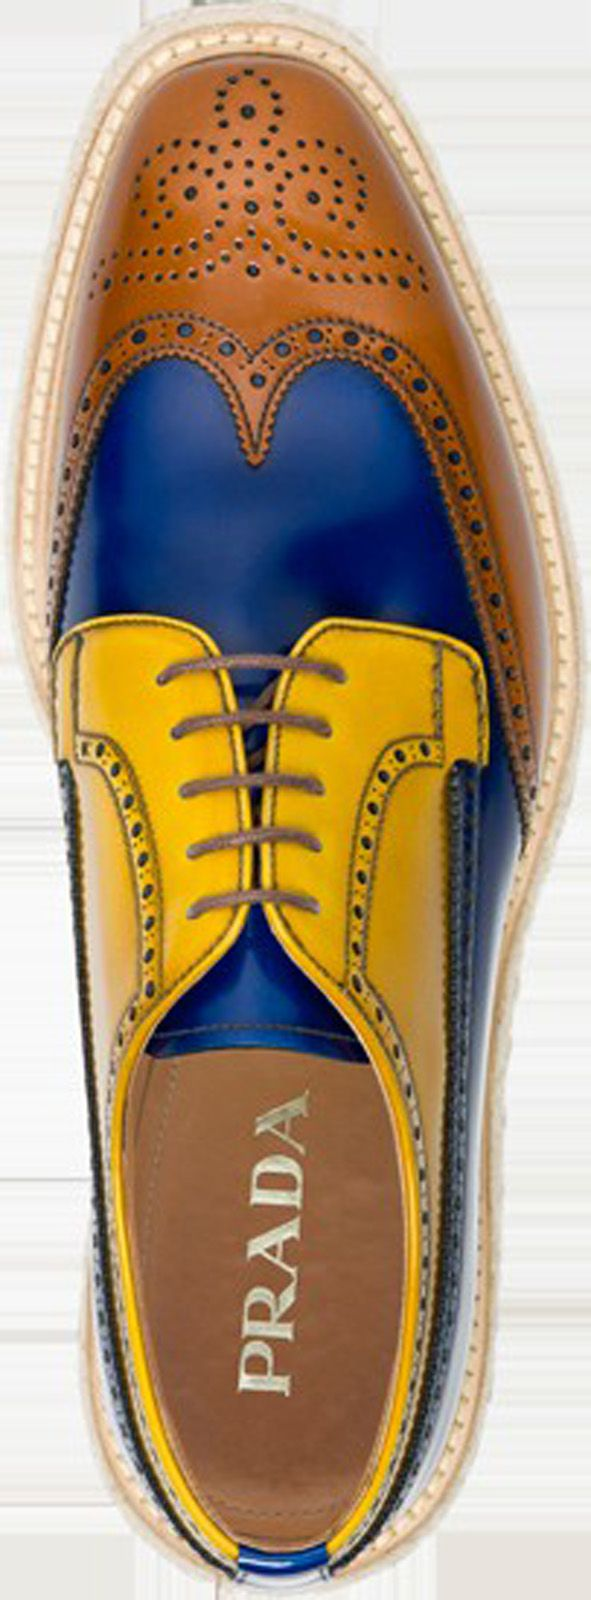 Prada- Menswear shoes- ~LadyLuxury~